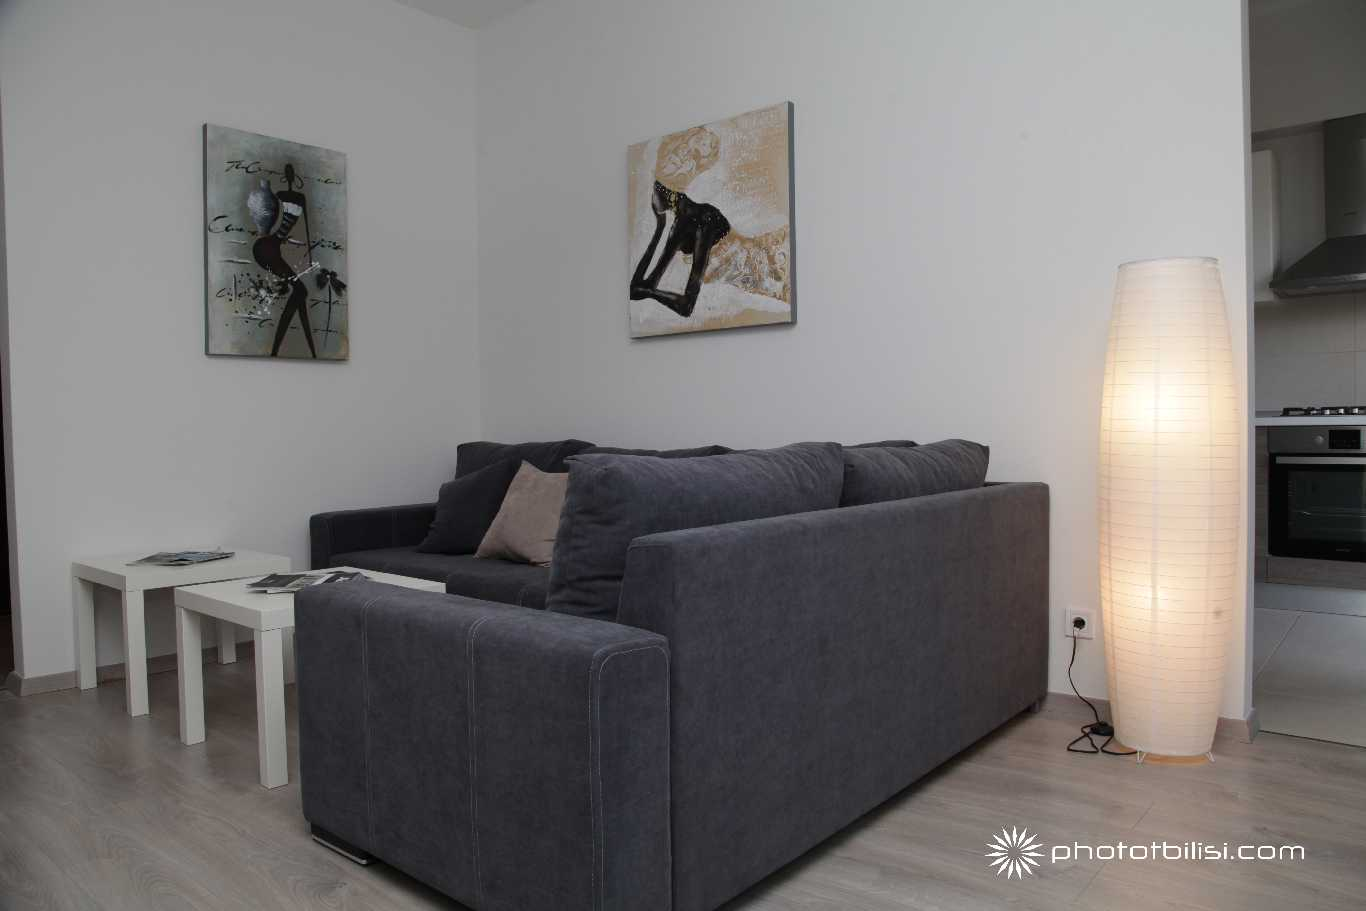 Apartment-for-rent-Tbilisi-M2-IMG_1062